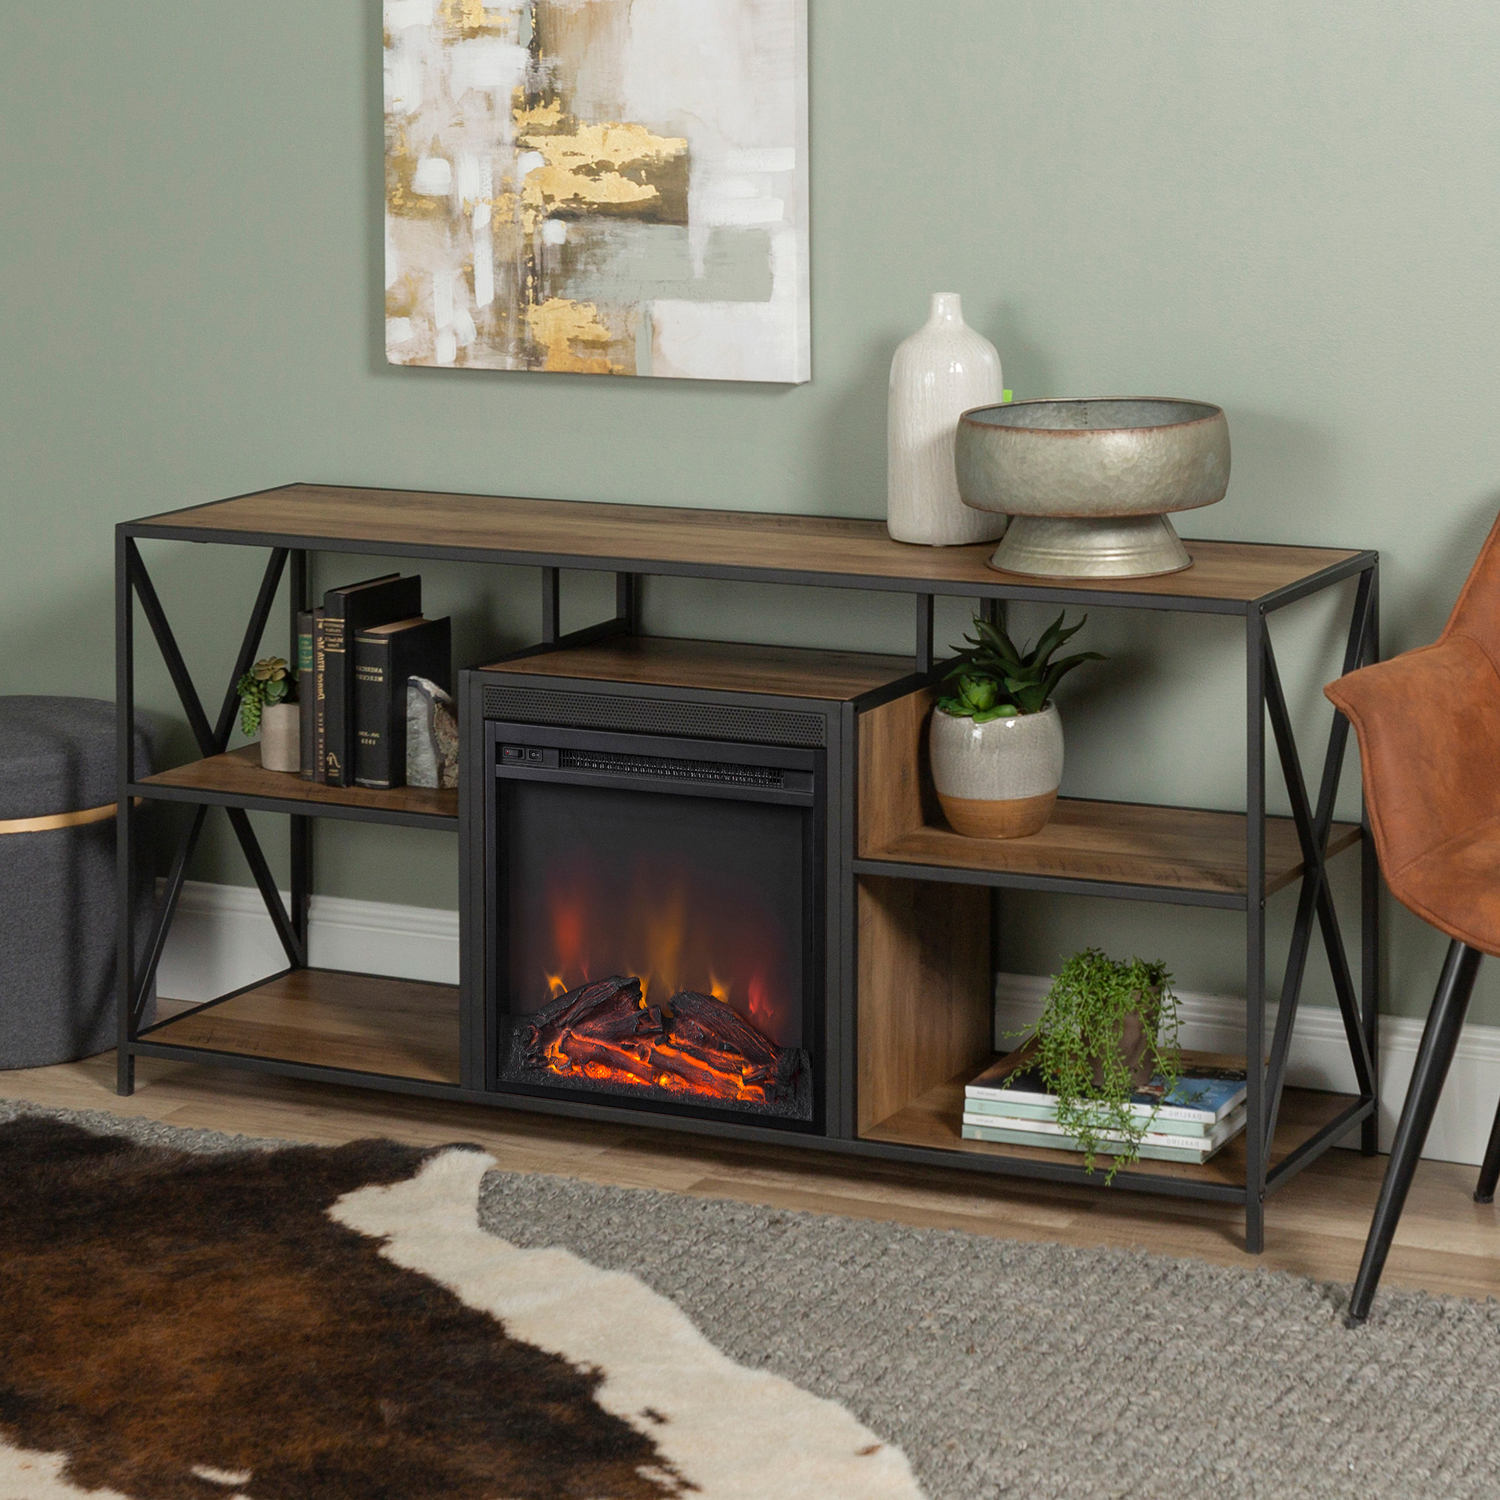 Urban Rustic Tv Stands Intended For Well Known Rustic Oak Tv Stand With Fireplace – Pier (View 4 of 10)